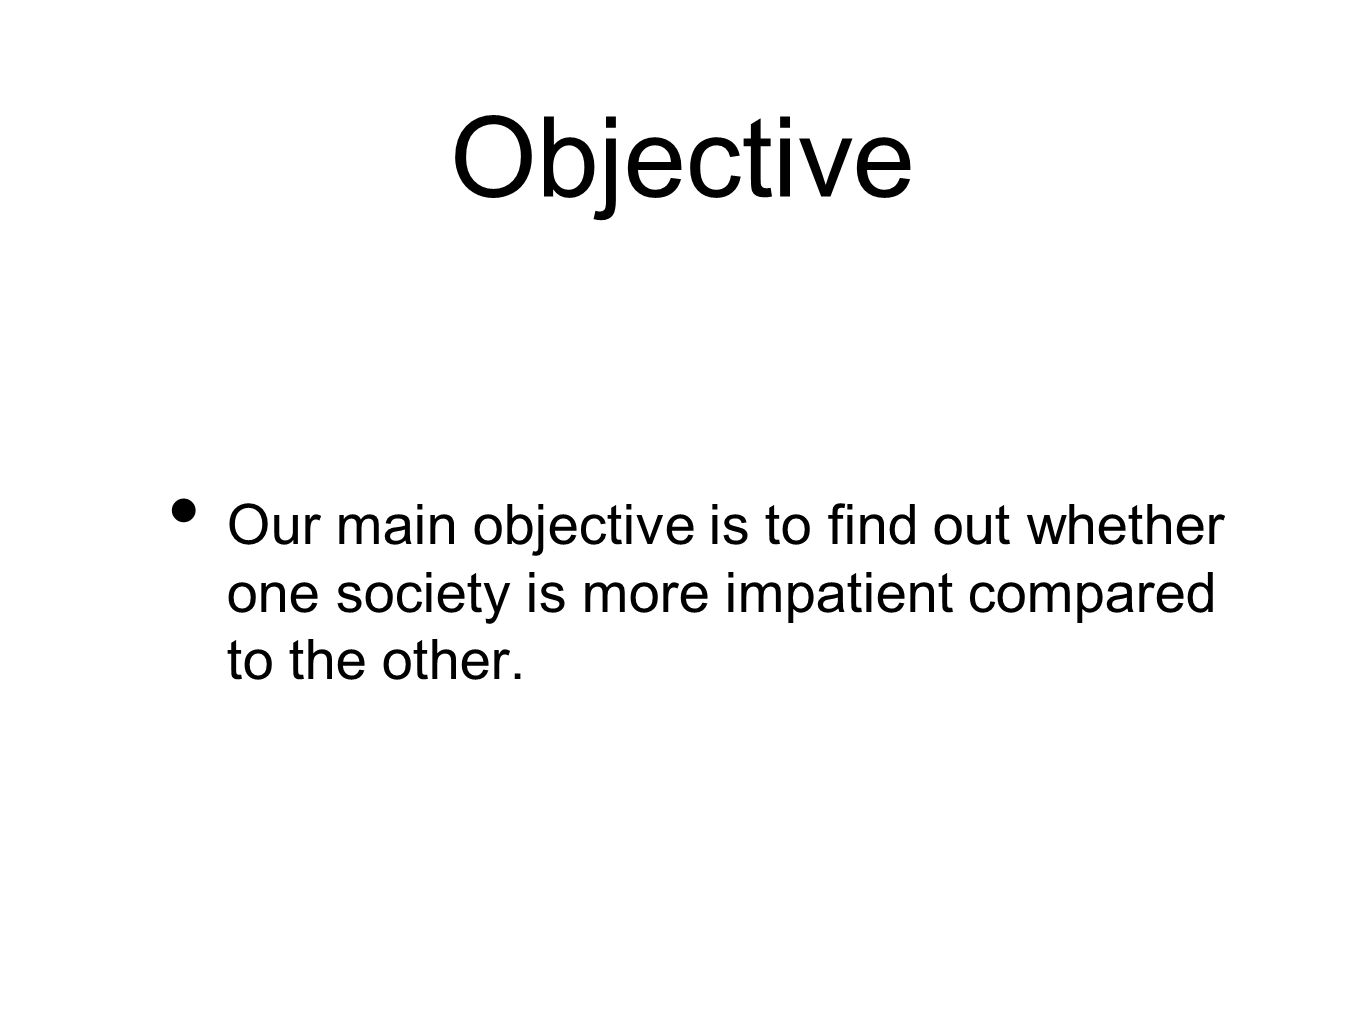 Objective Our main objective is to find out whether one society is more impatient compared to the other.